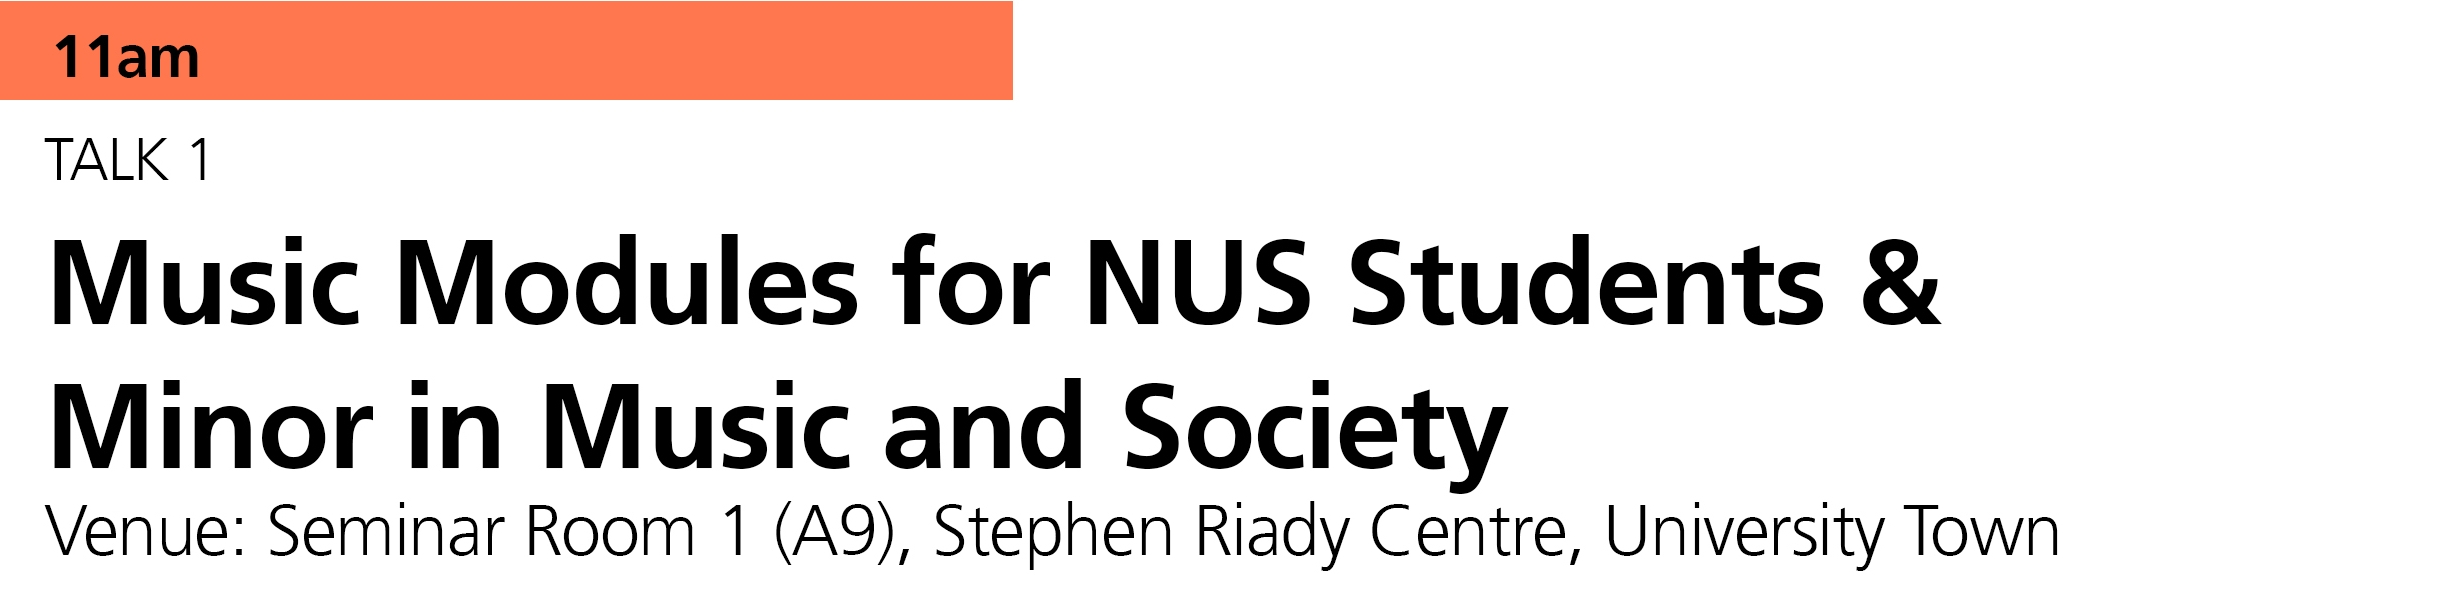 In addition to a range of music modules available to NUS students, beginning this coming academic year, NUS students are able to read a new  Minor in Music & Society . Find out more here:  https://www.ystmusic.nus.edu.sg/news/minor-in-music-society